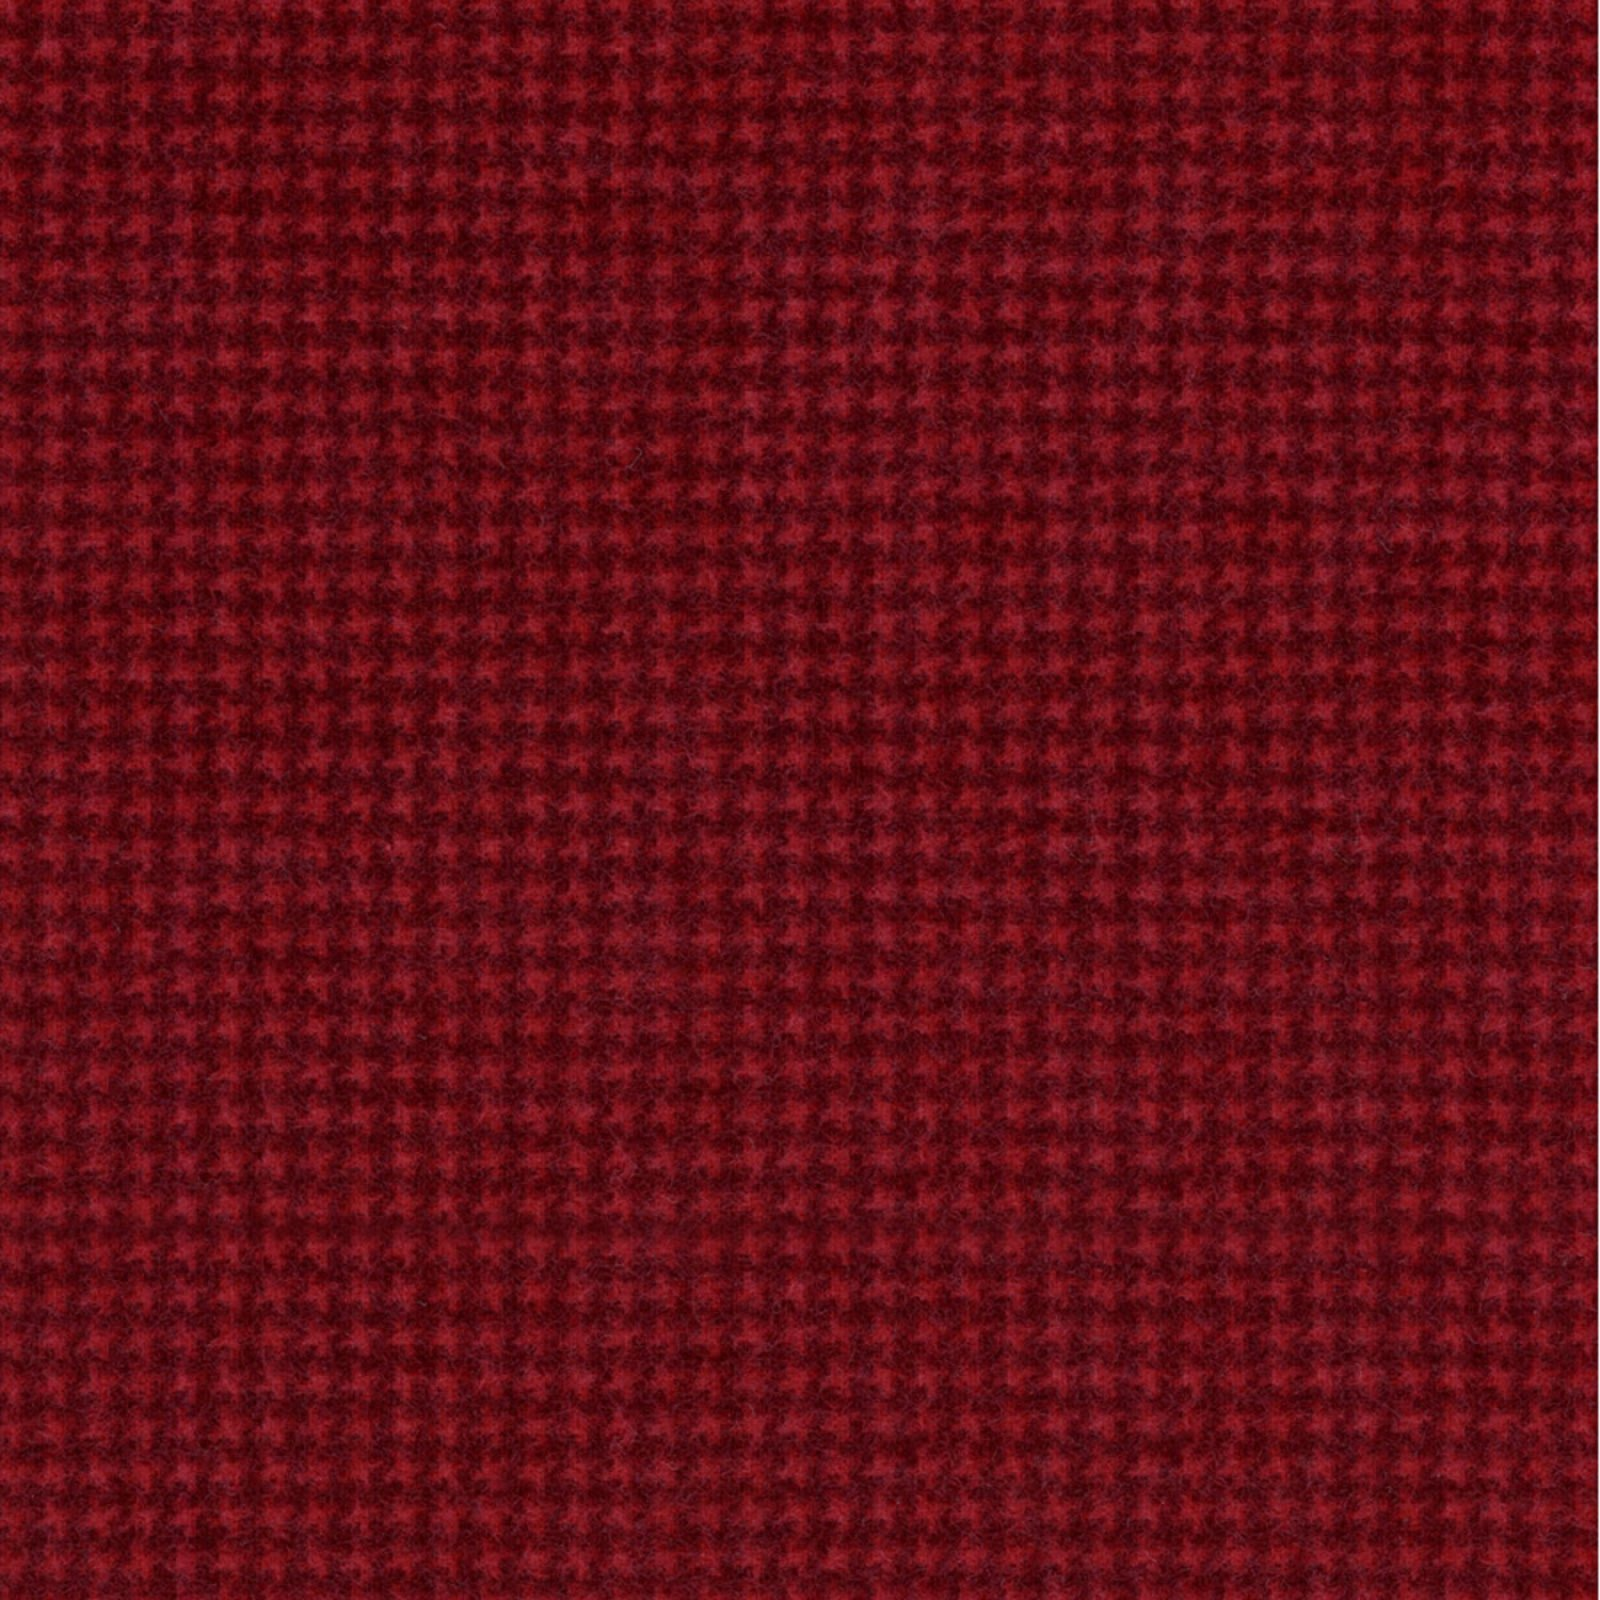 Woolies Flannel - Houndstooth - Red